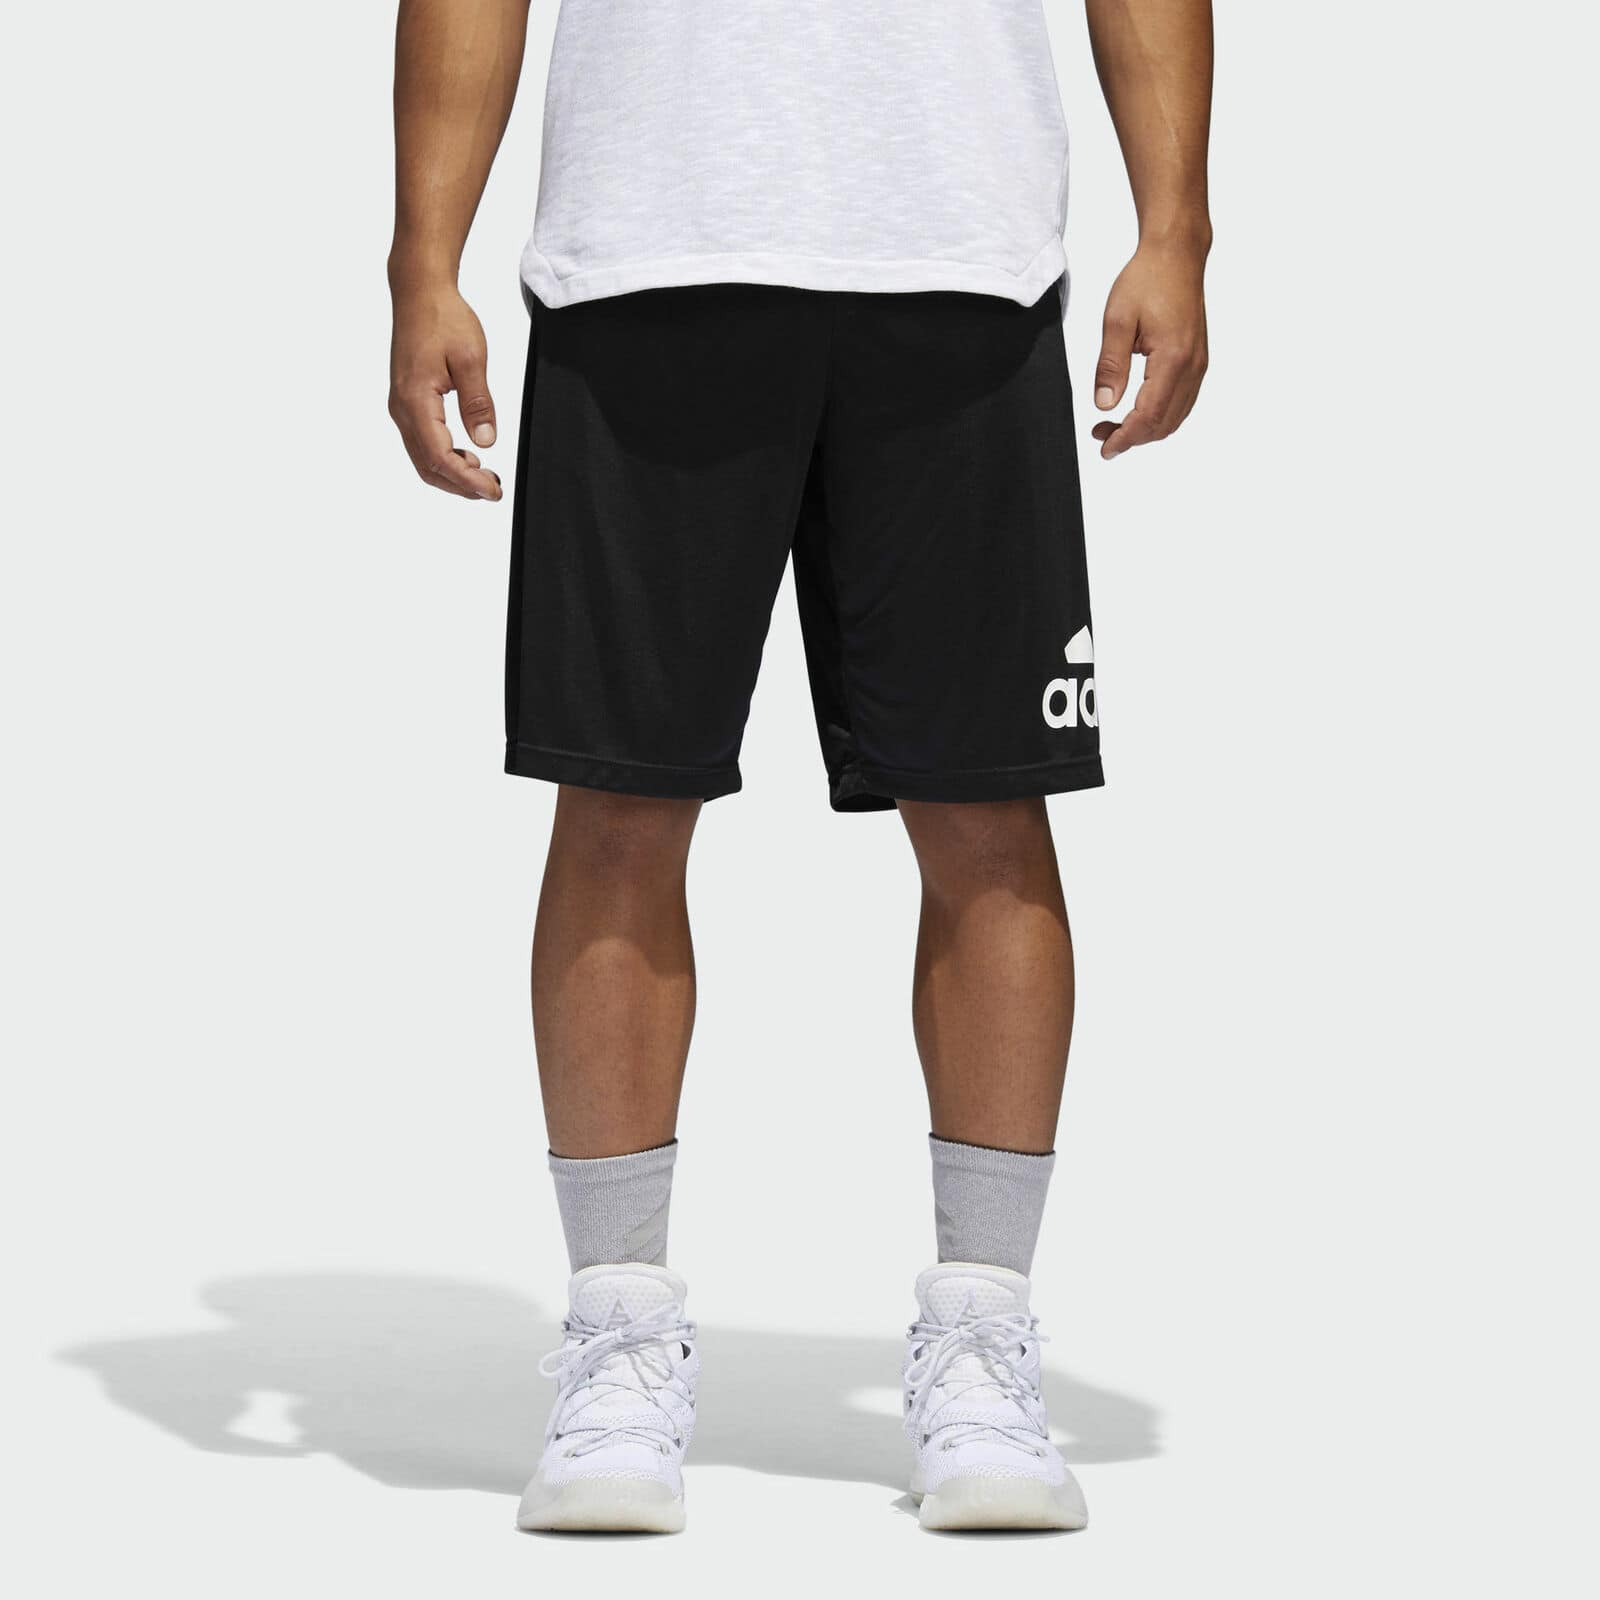 adidas Men's Crazylight Shorts $12 + free shipping